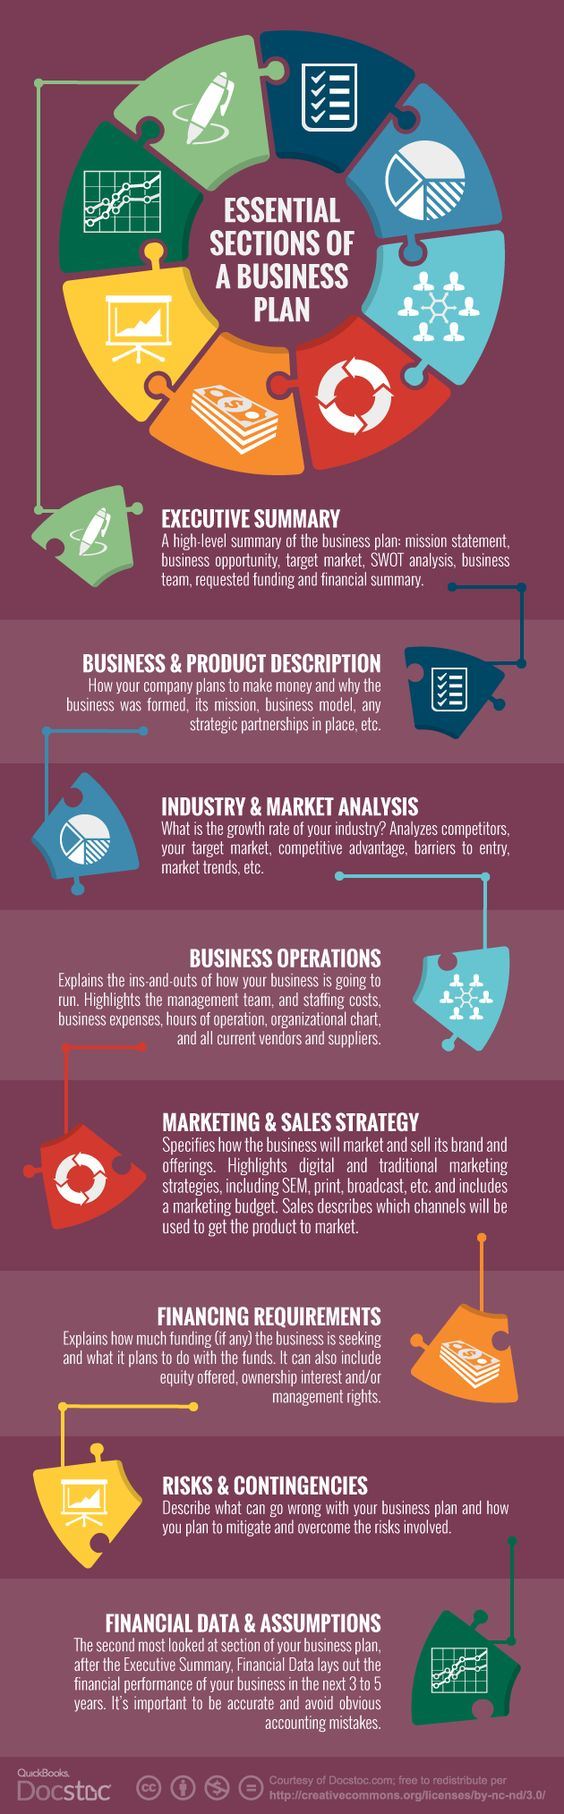 The Essential Sections of a #BusinessPlan. via @docstoc